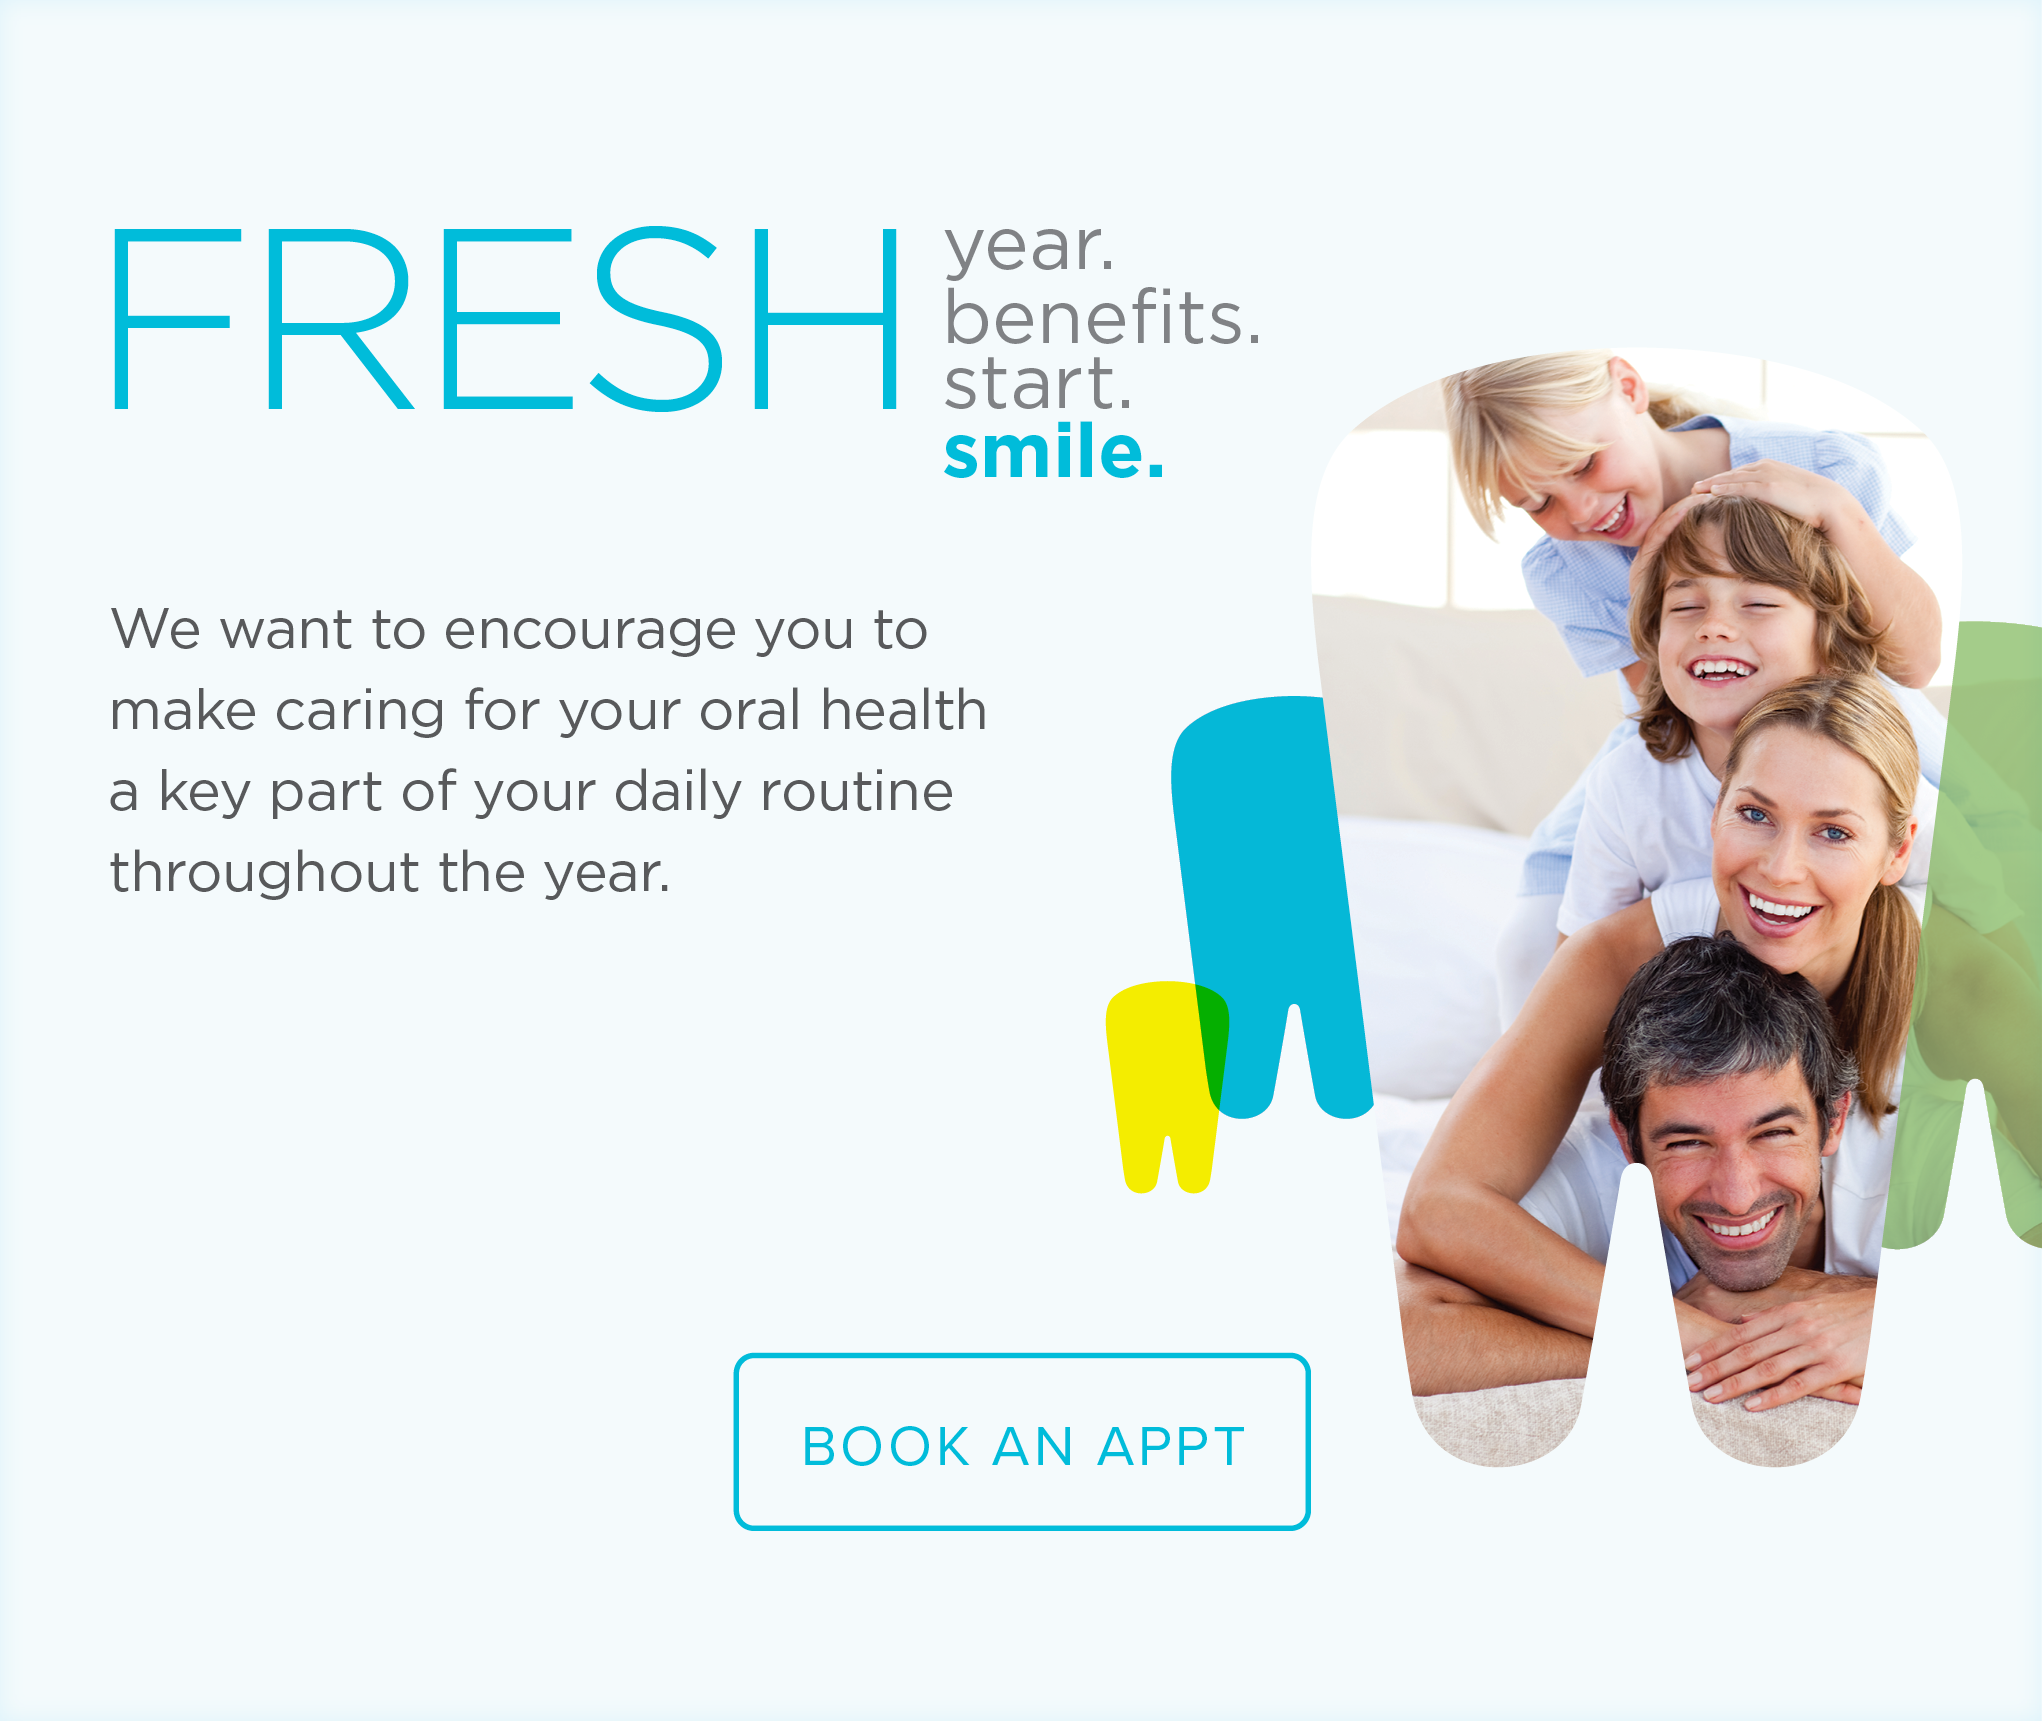 Downtown SD Modern Dentistry - Make the Most of Your Benefits